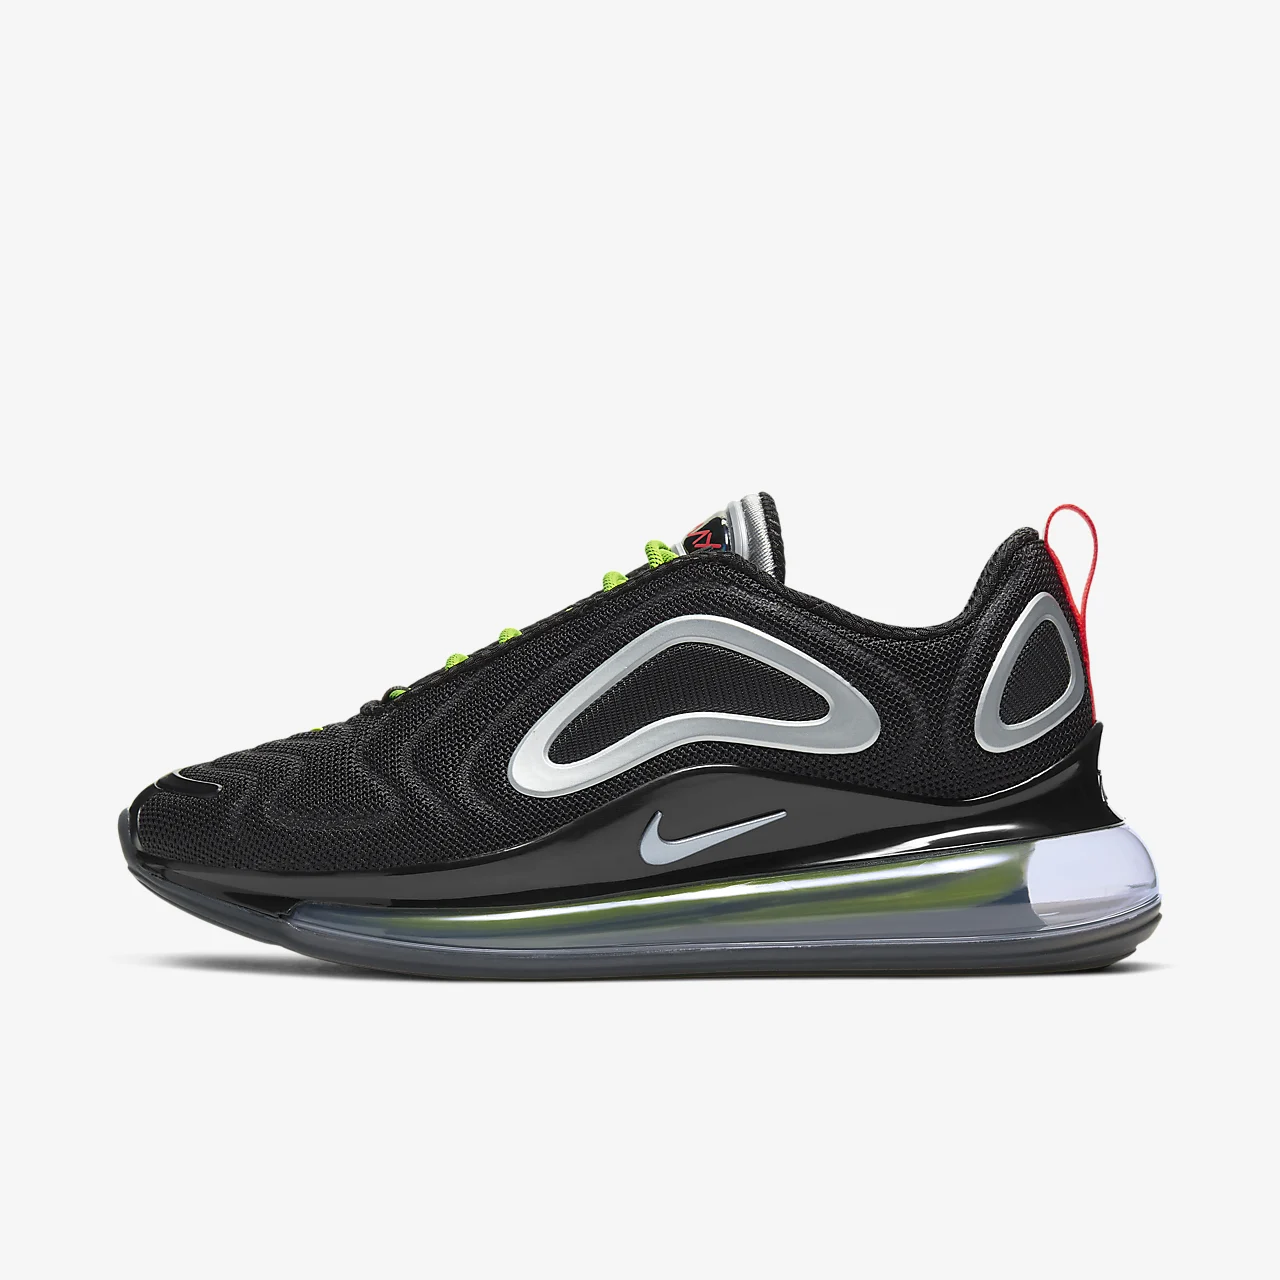 유럽직배송 나이키 NIKE Nike Air Max 720 Women's Shoe CT3435-001